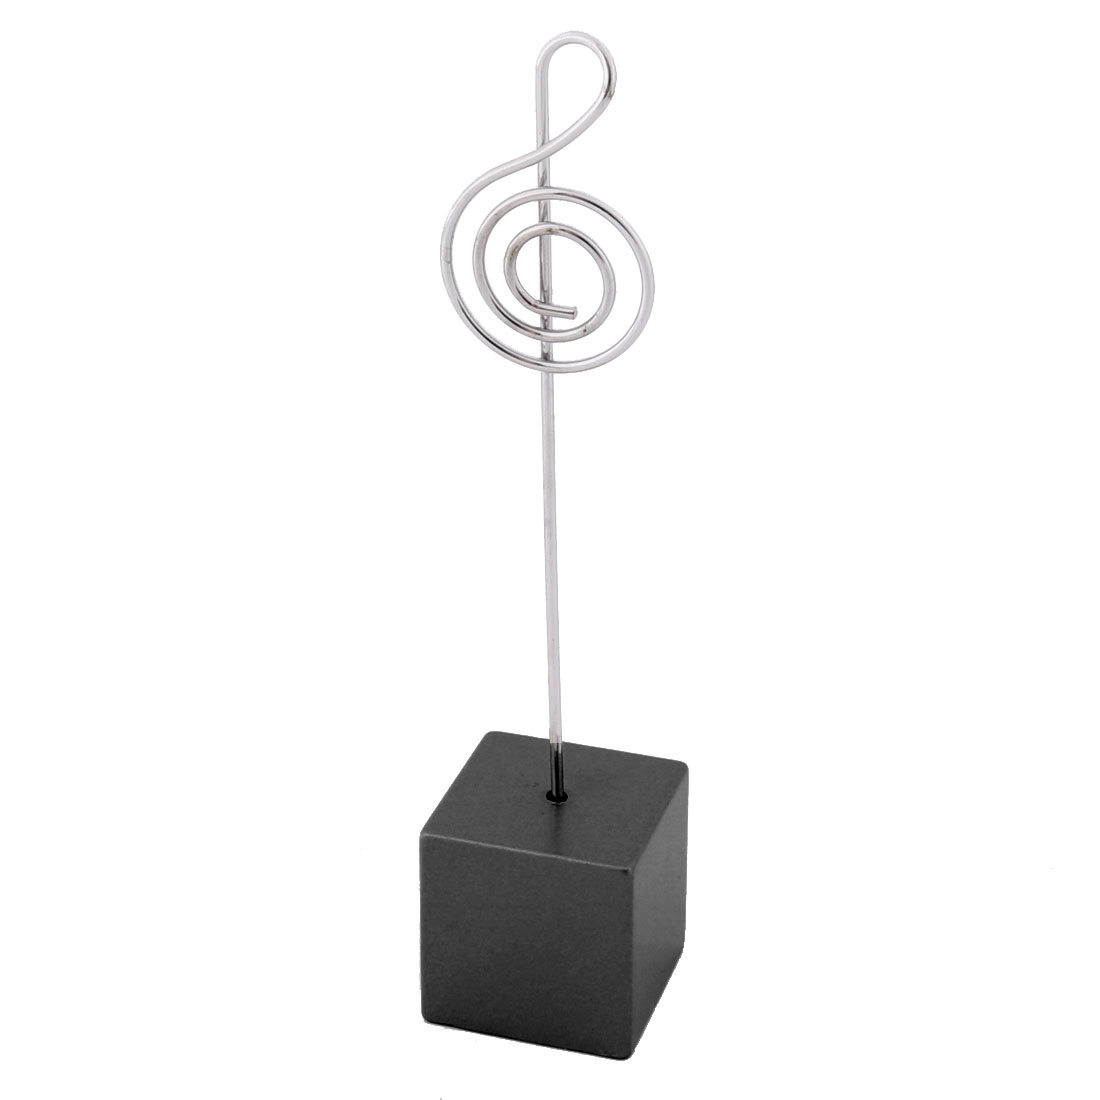 Household Office Resin Musical Note Shaped Tabletop Decoration Photo Memo Clip Black